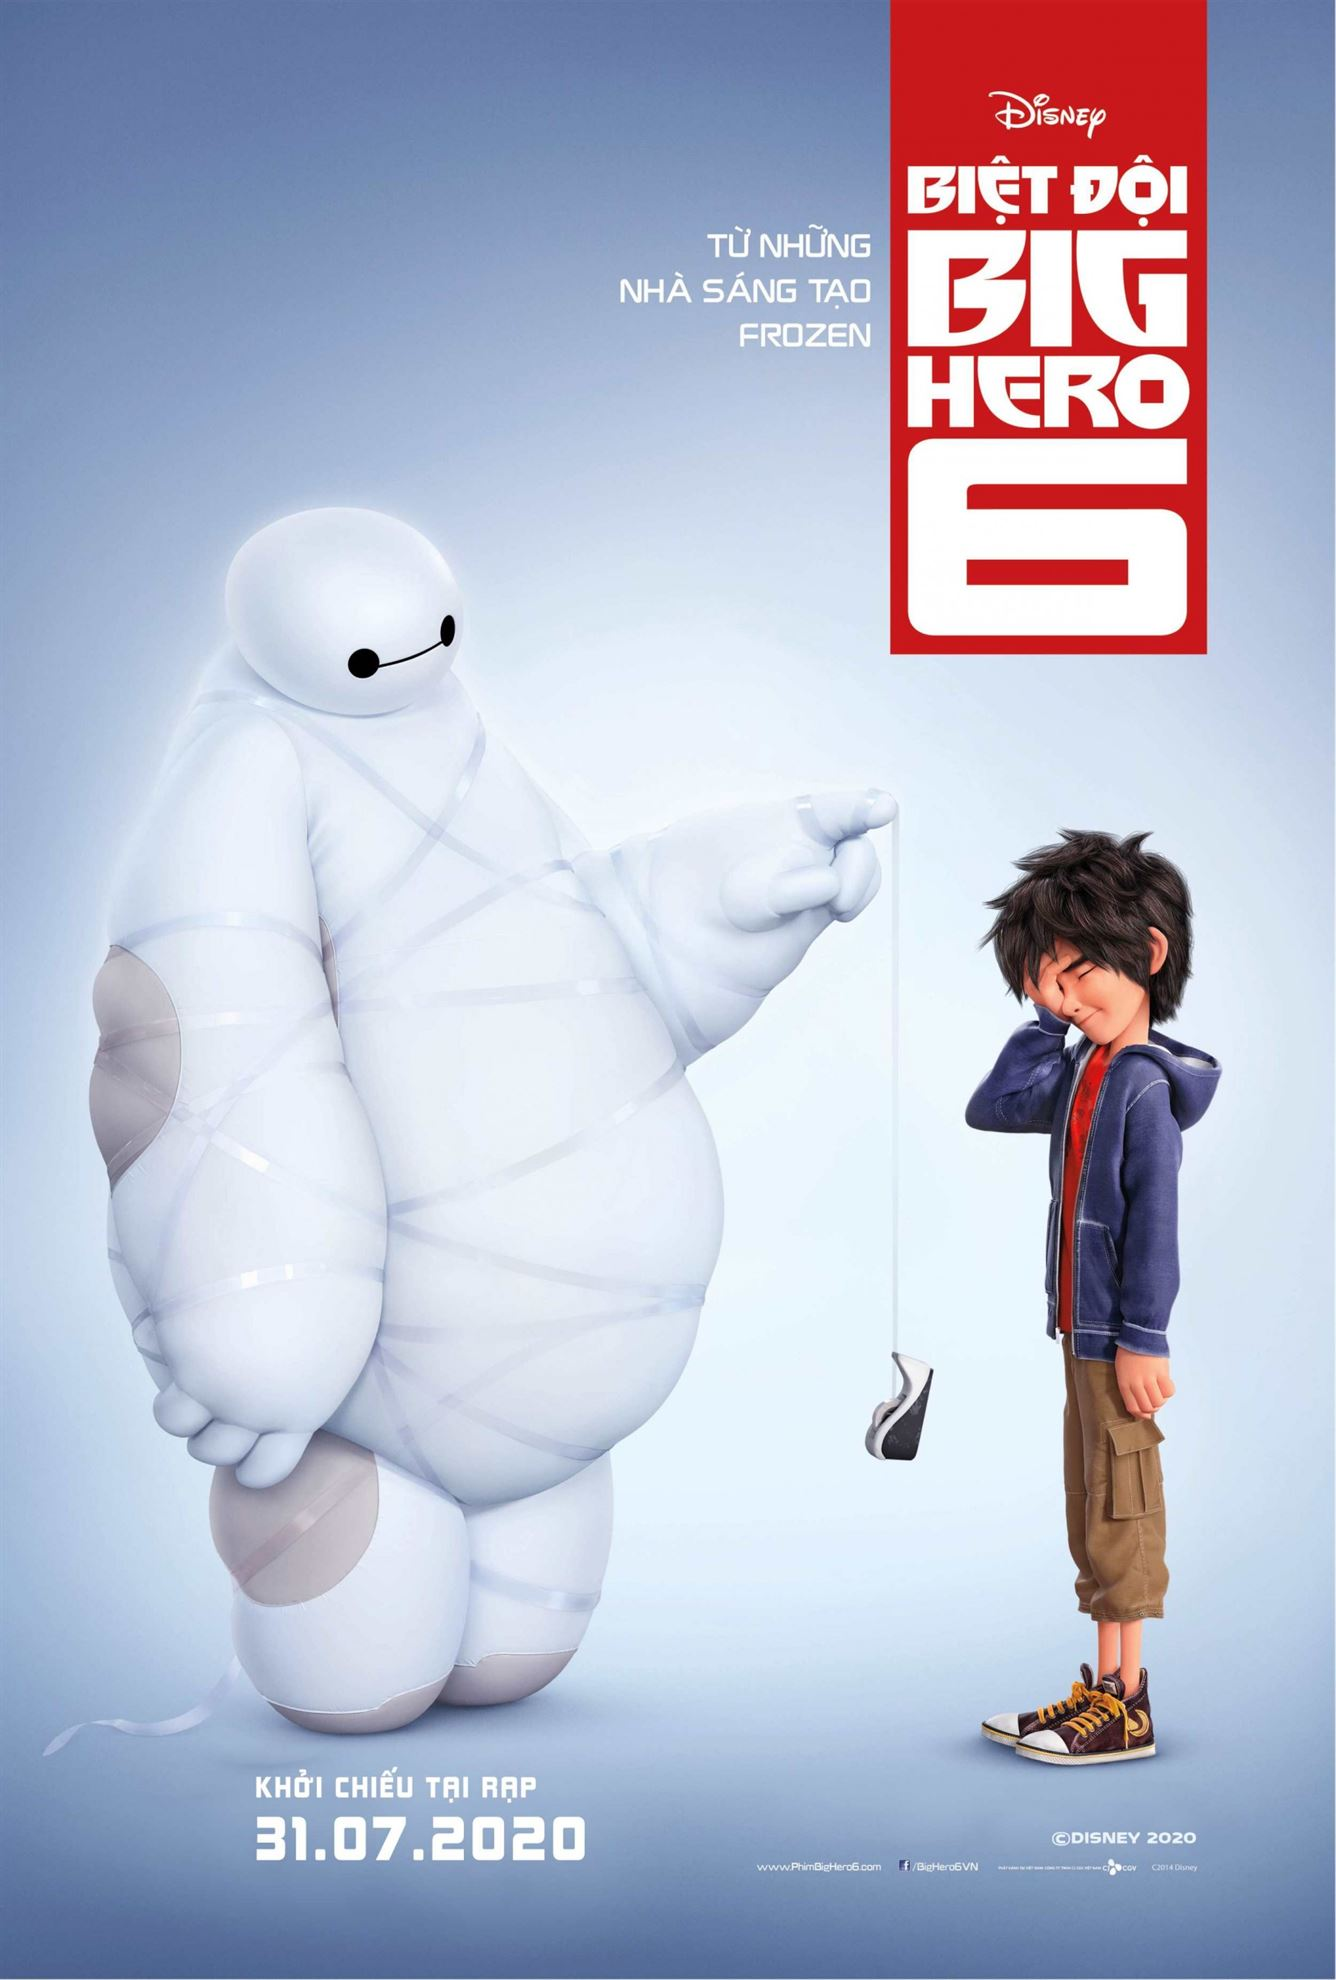 Picture of Biệt đội big hero 6 (2D-LT) - P